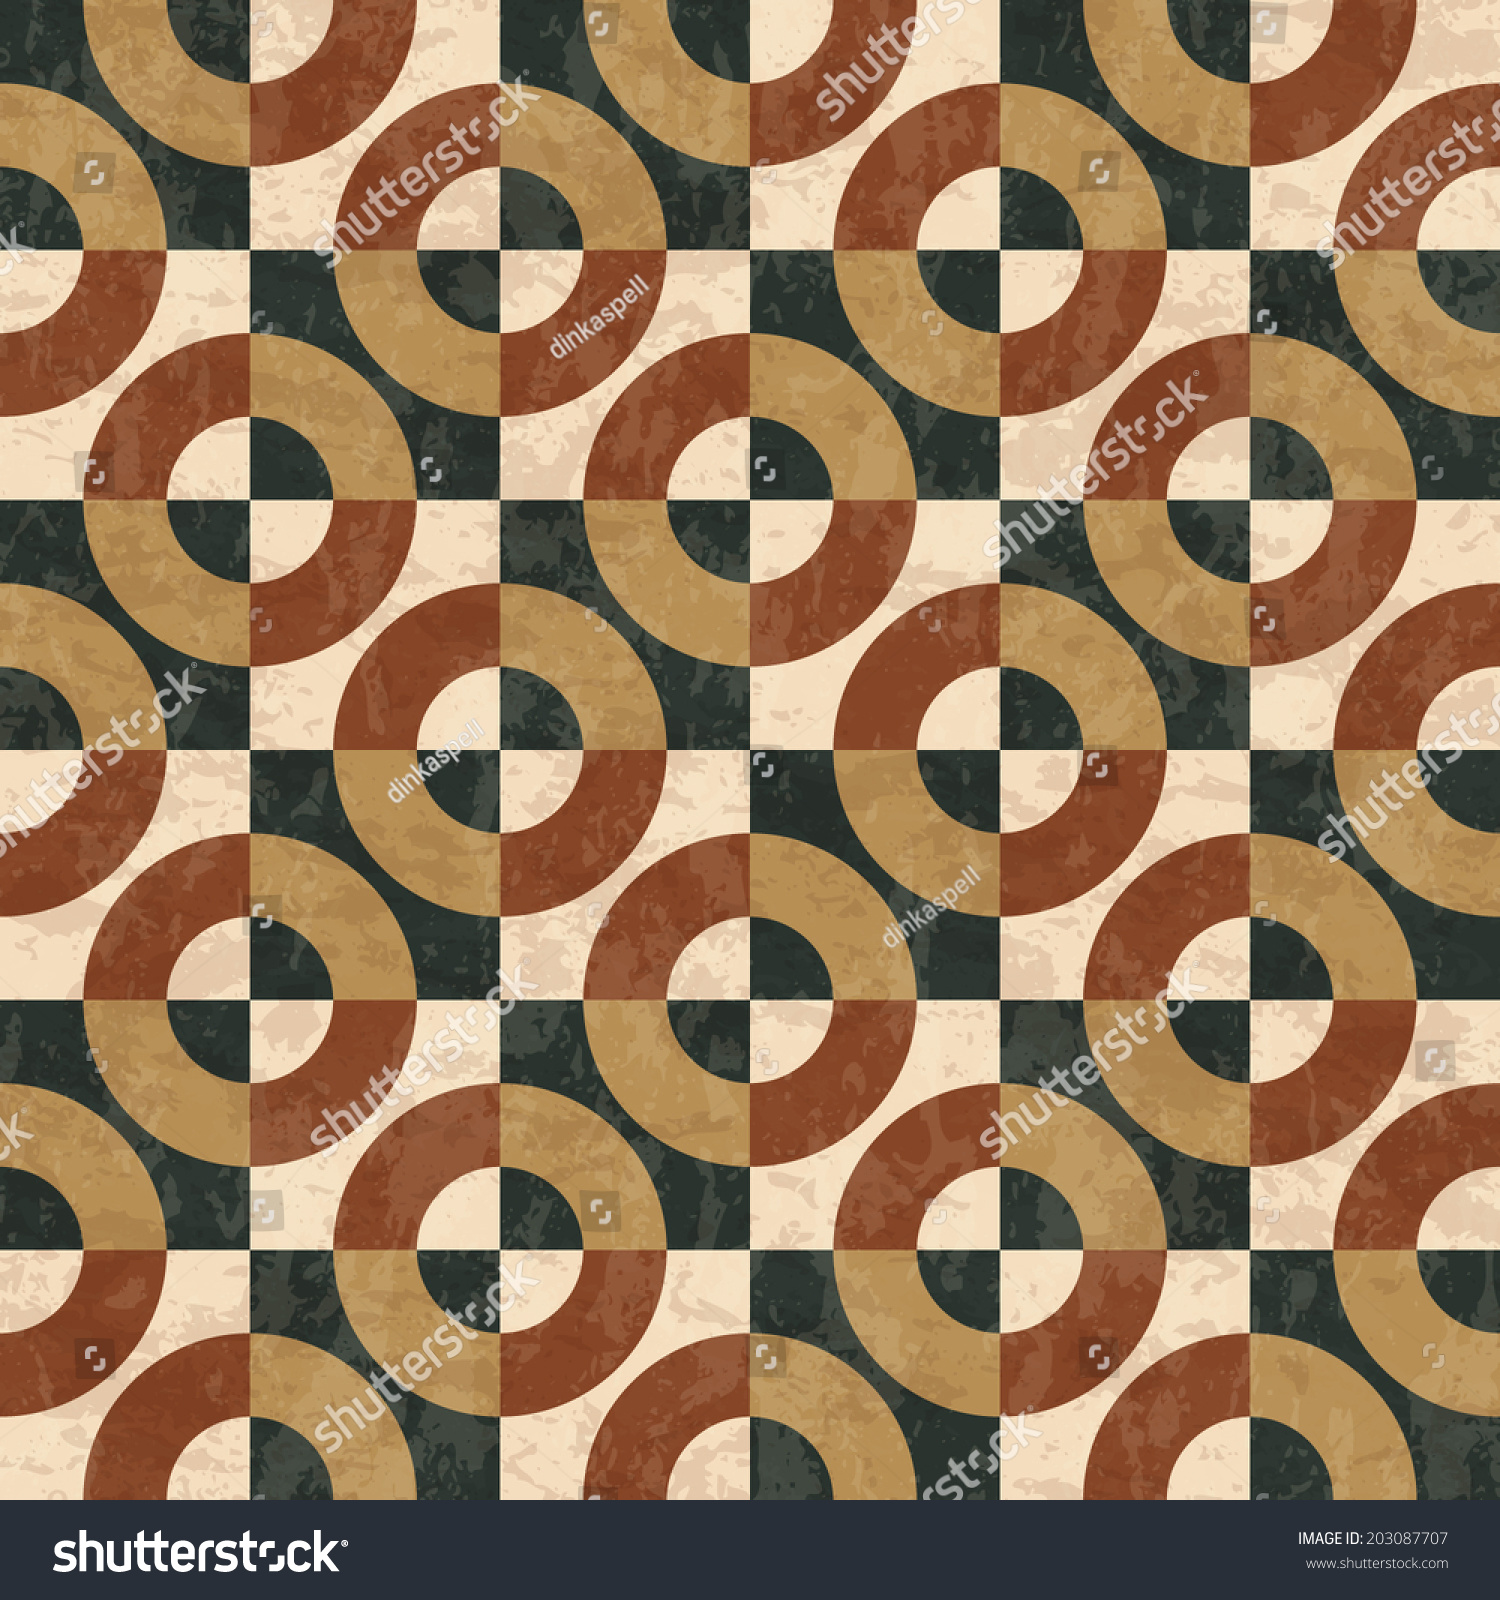 Geometric Marble Floor : Antique marble floor tiles abstract geometric stock vector